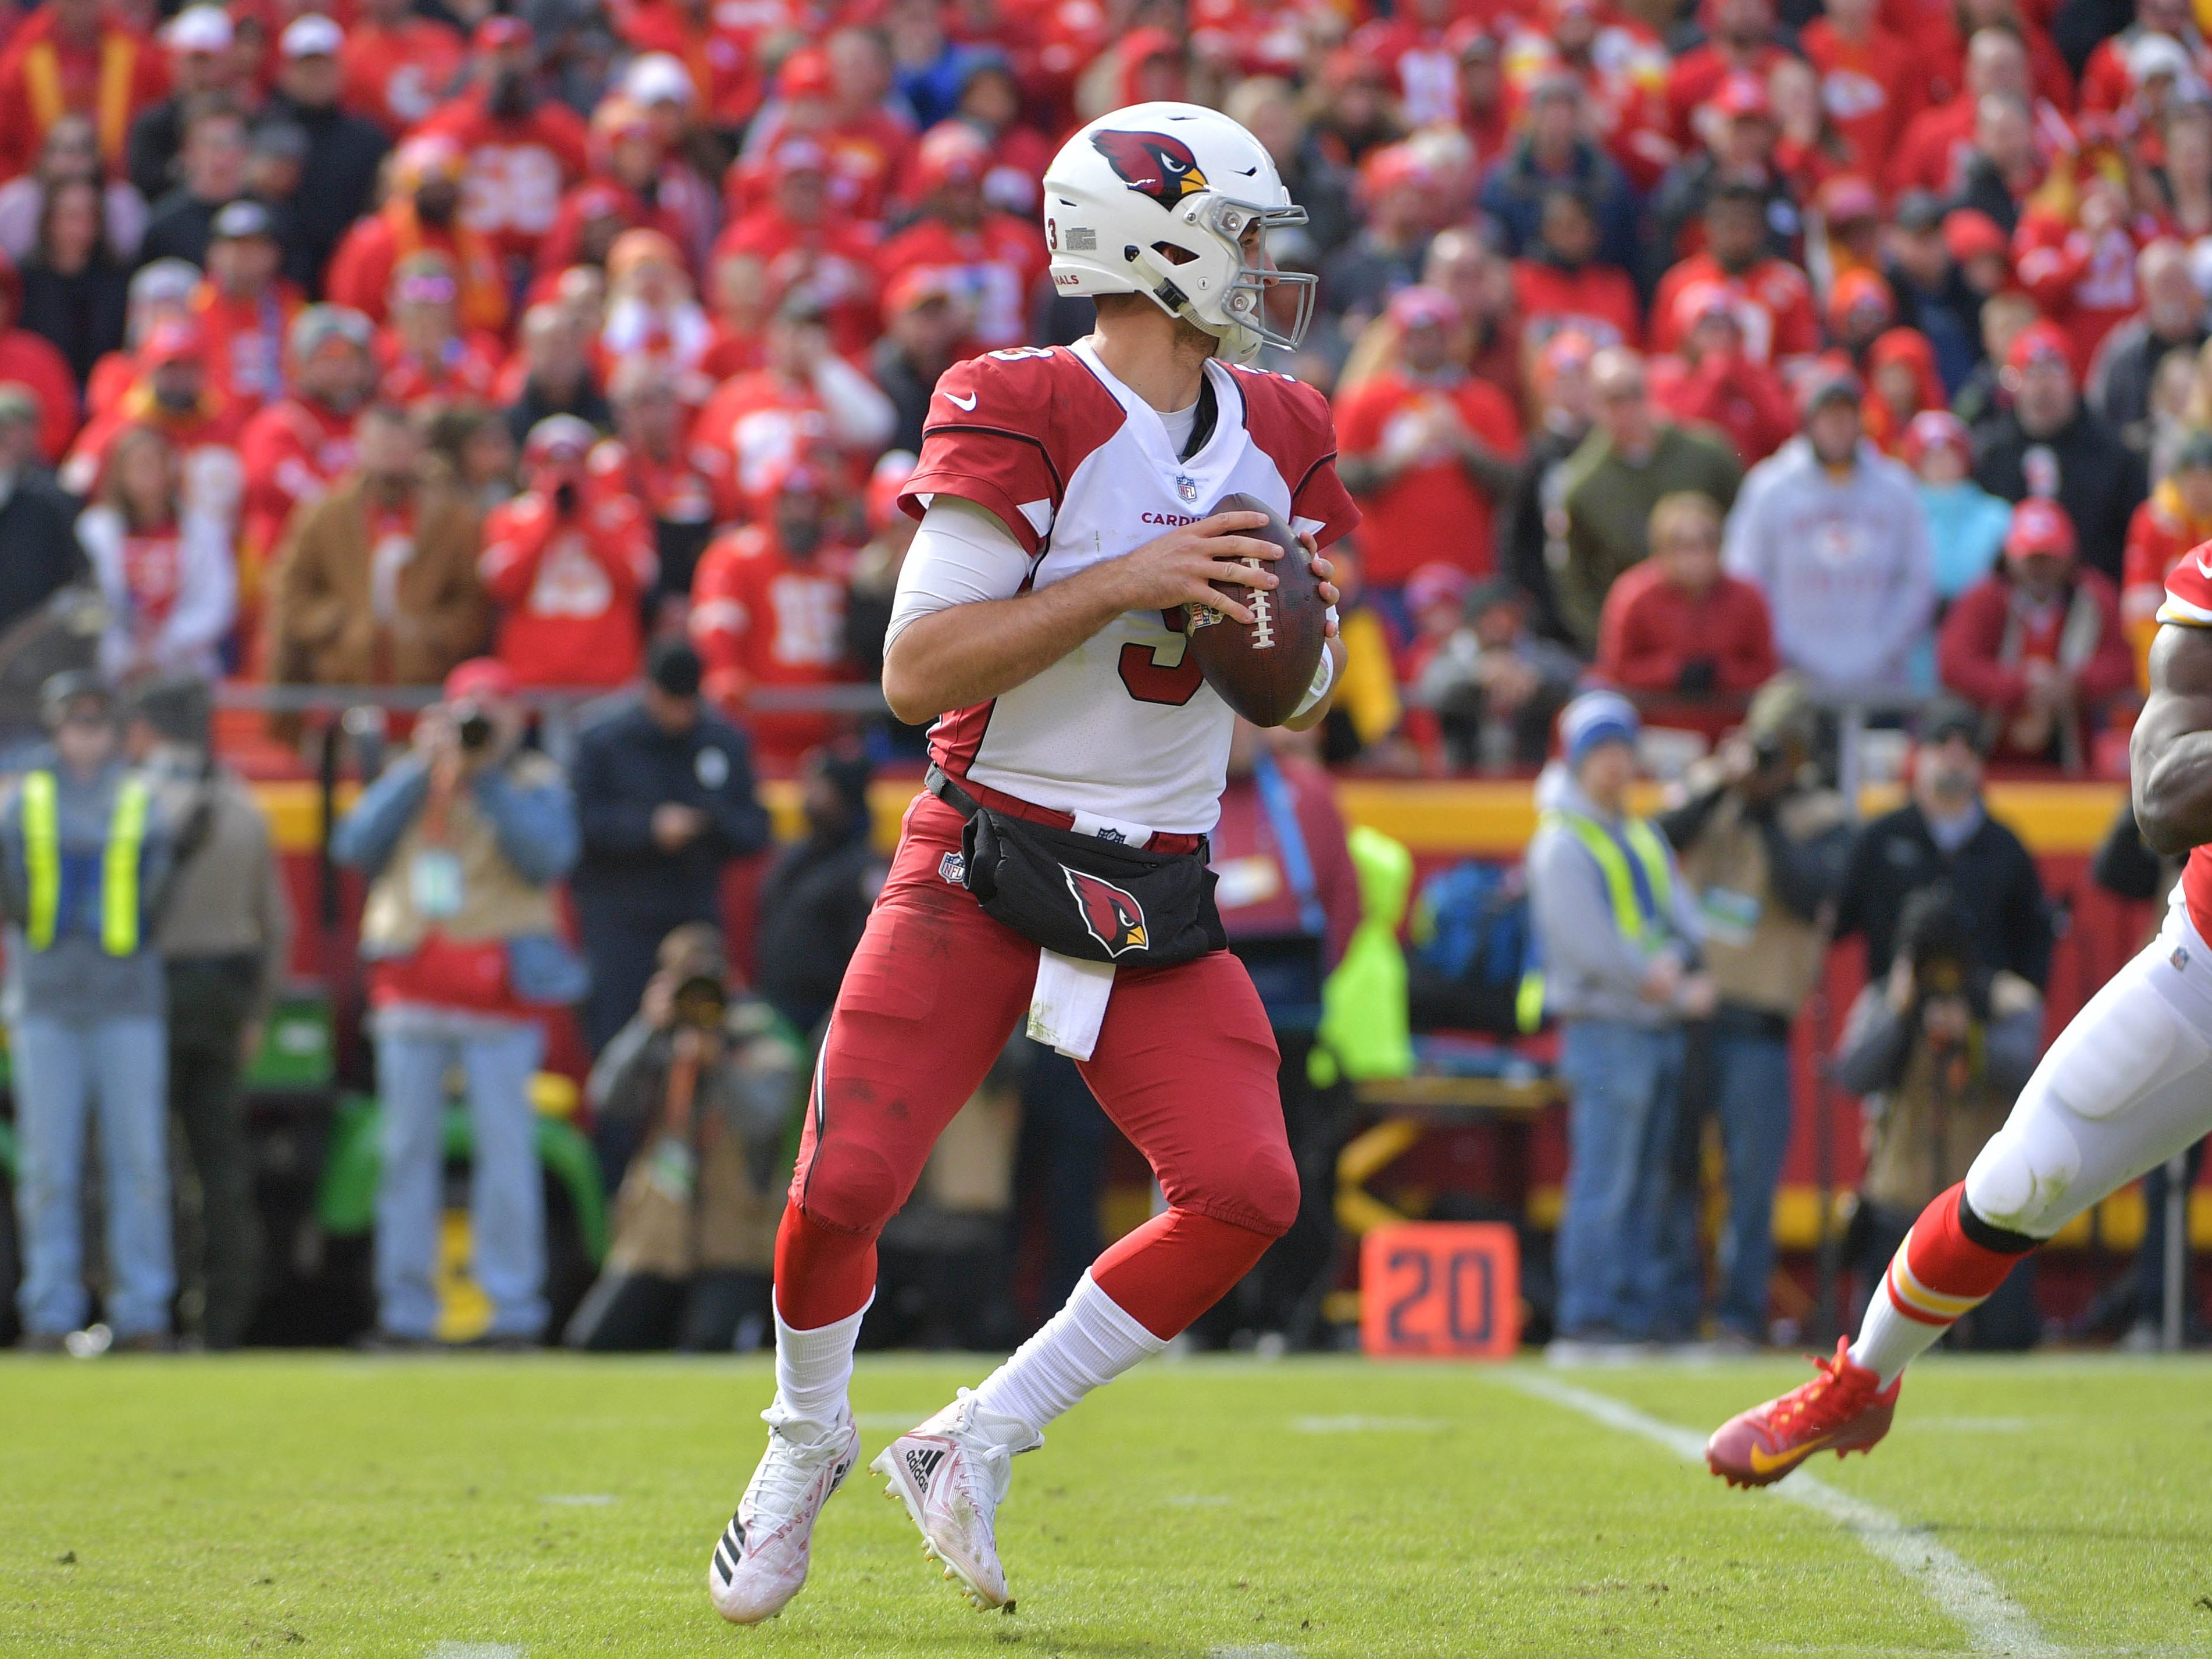 Nov 11, 2018; Kansas City, MO, USA; Arizona Cardinals quarterback Josh Rosen (3) drops back to pass during the first half against the Kansas City Chiefs at Arrowhead Stadium. Mandatory Credit: Denny Medley-USA TODAY Sports